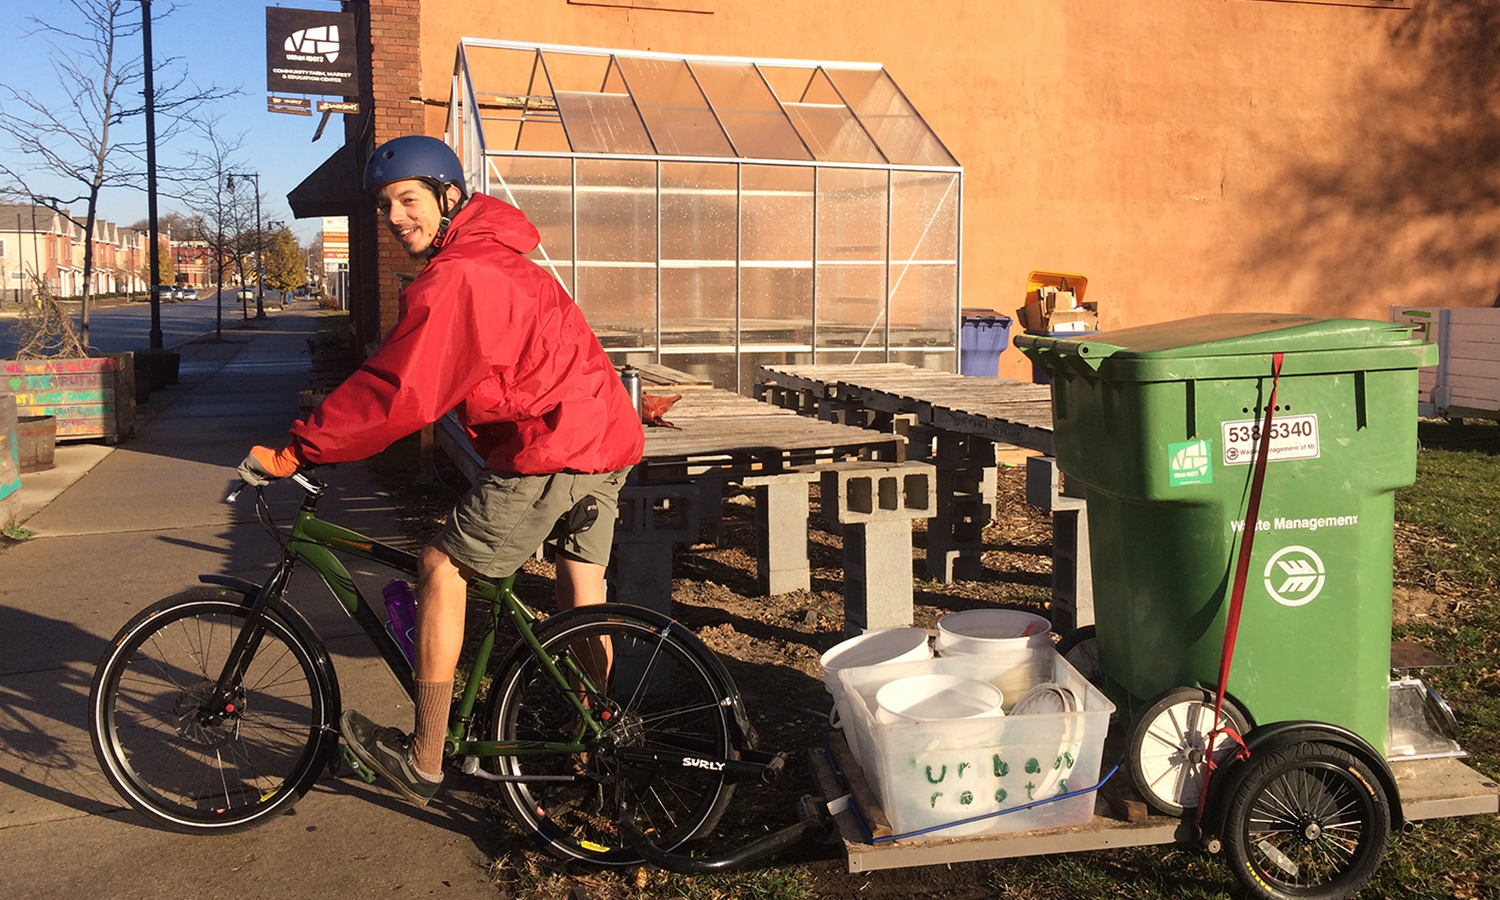 Individual compost haulers across the country are making bigger changes by encouraging local governments to provide public compost pickup services.